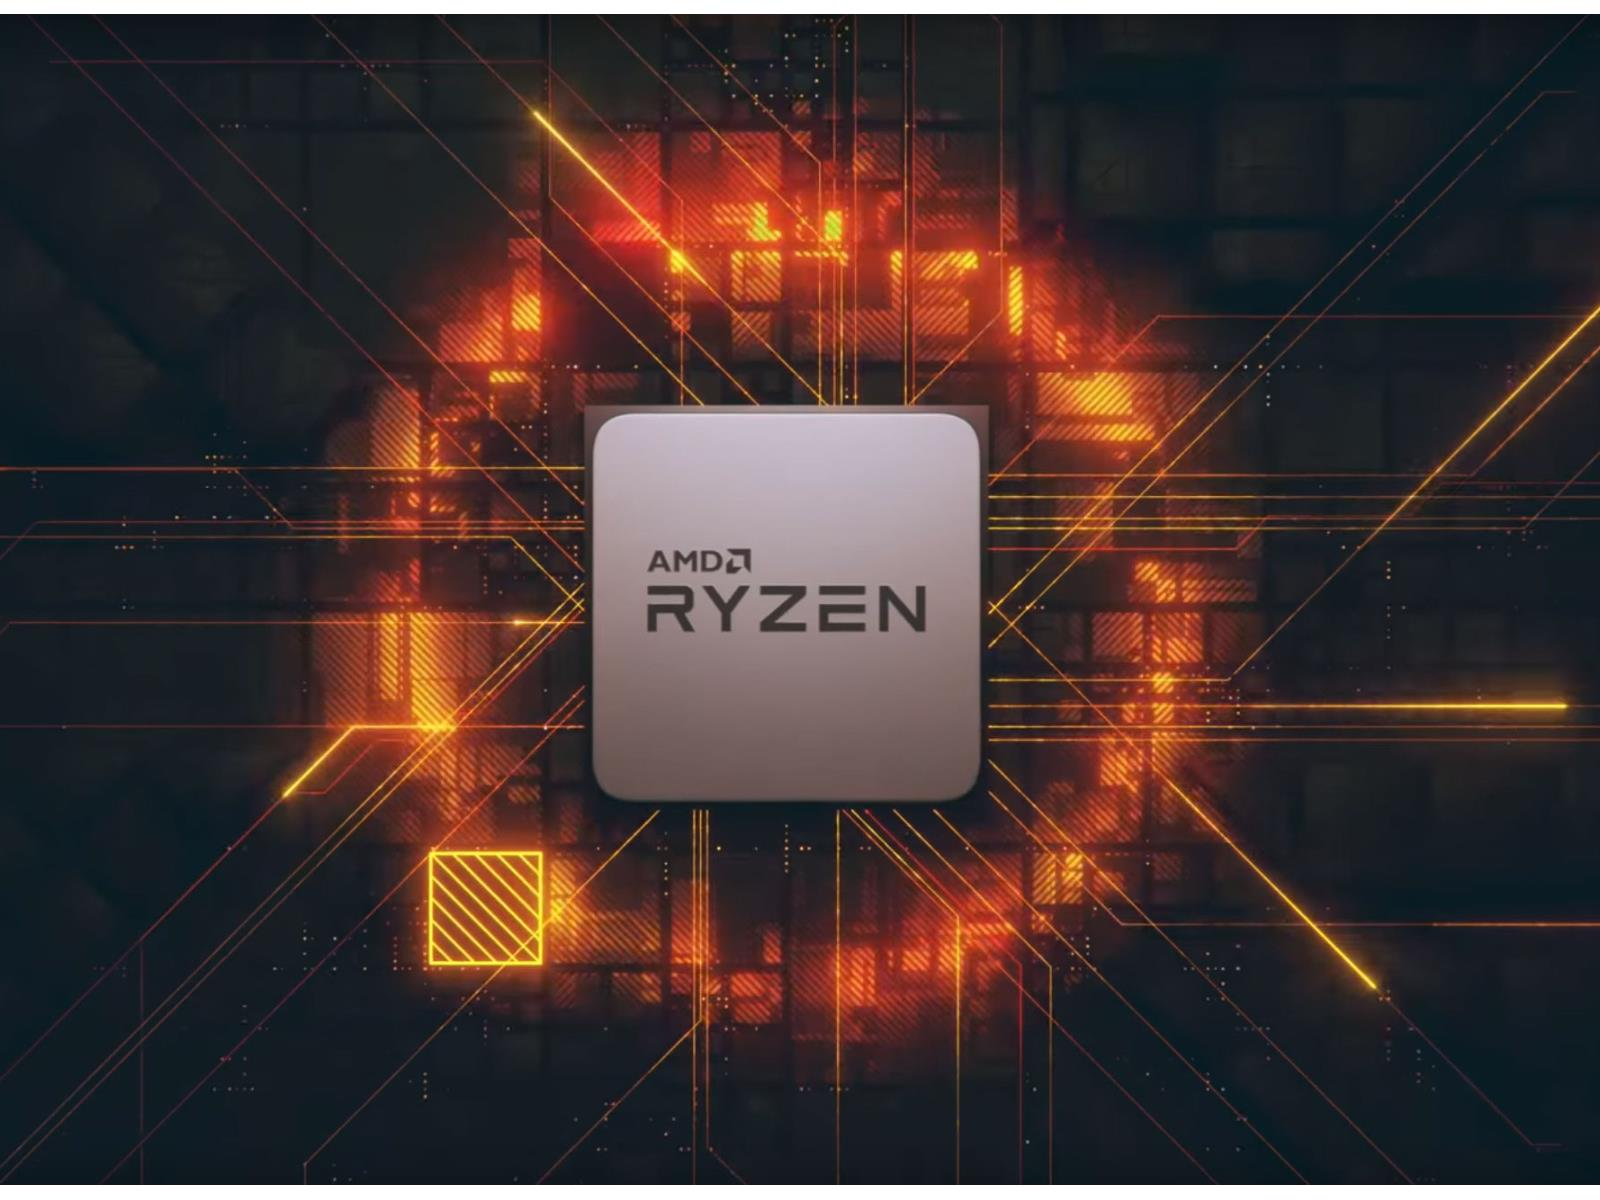 Updated Amd Roadmaps Provide Zen 3 Status Zen 4 And Rdna2 On Track Hothardware